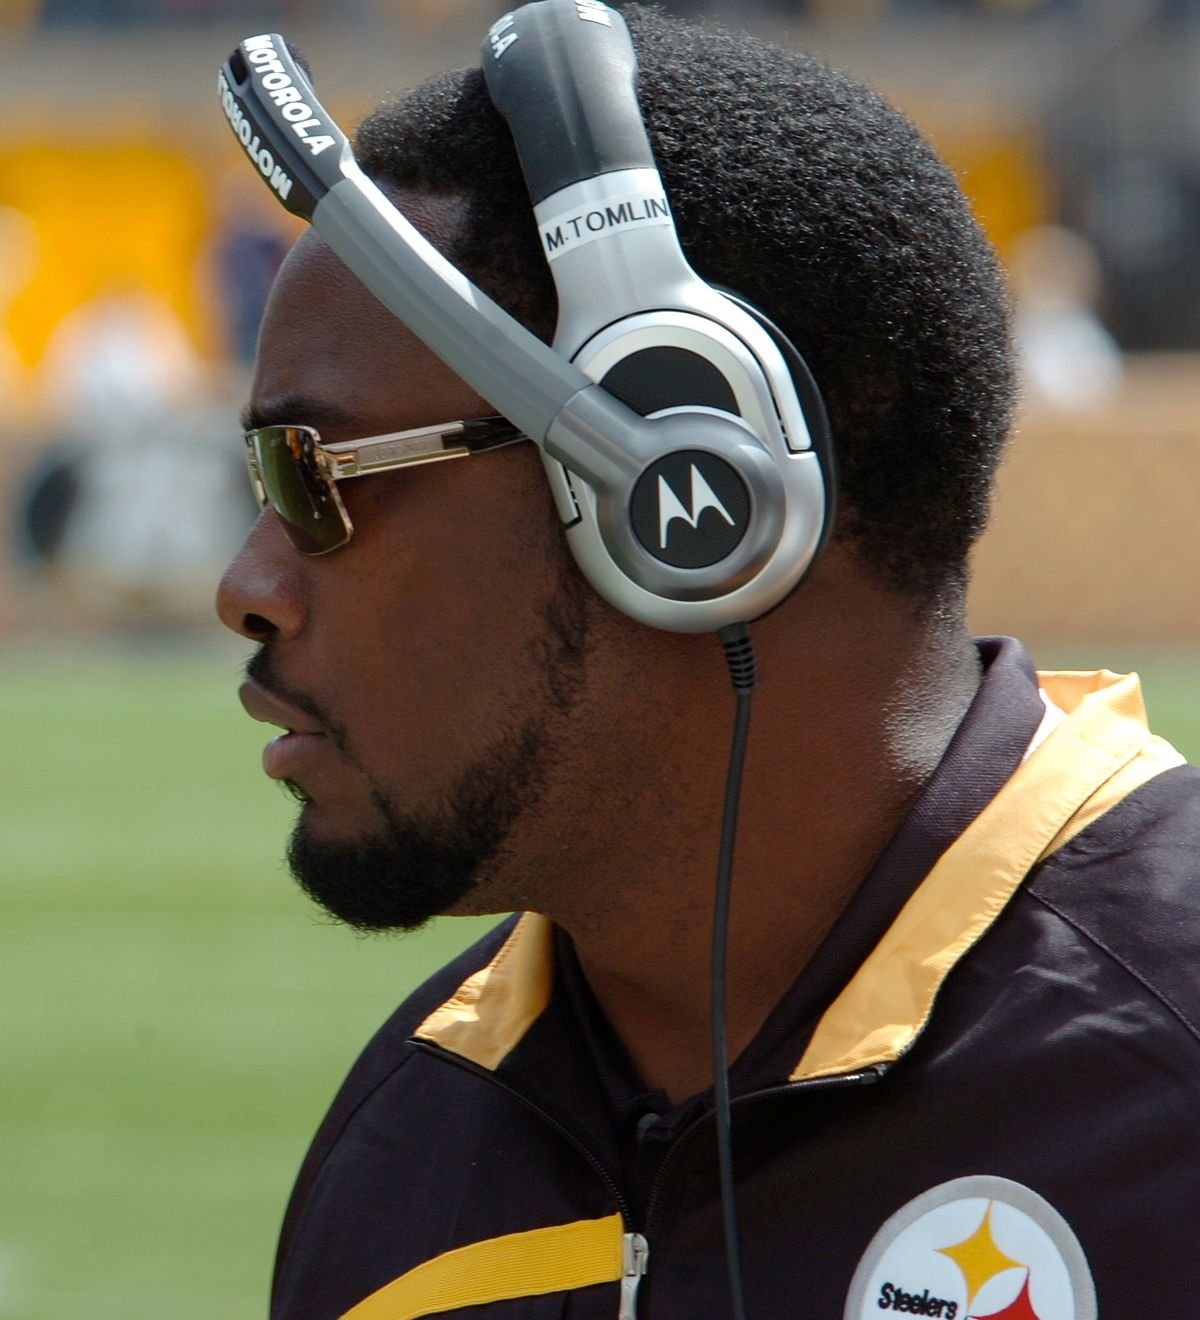 promo code 23be8 8669d Mike Tomlin - Wikipedia